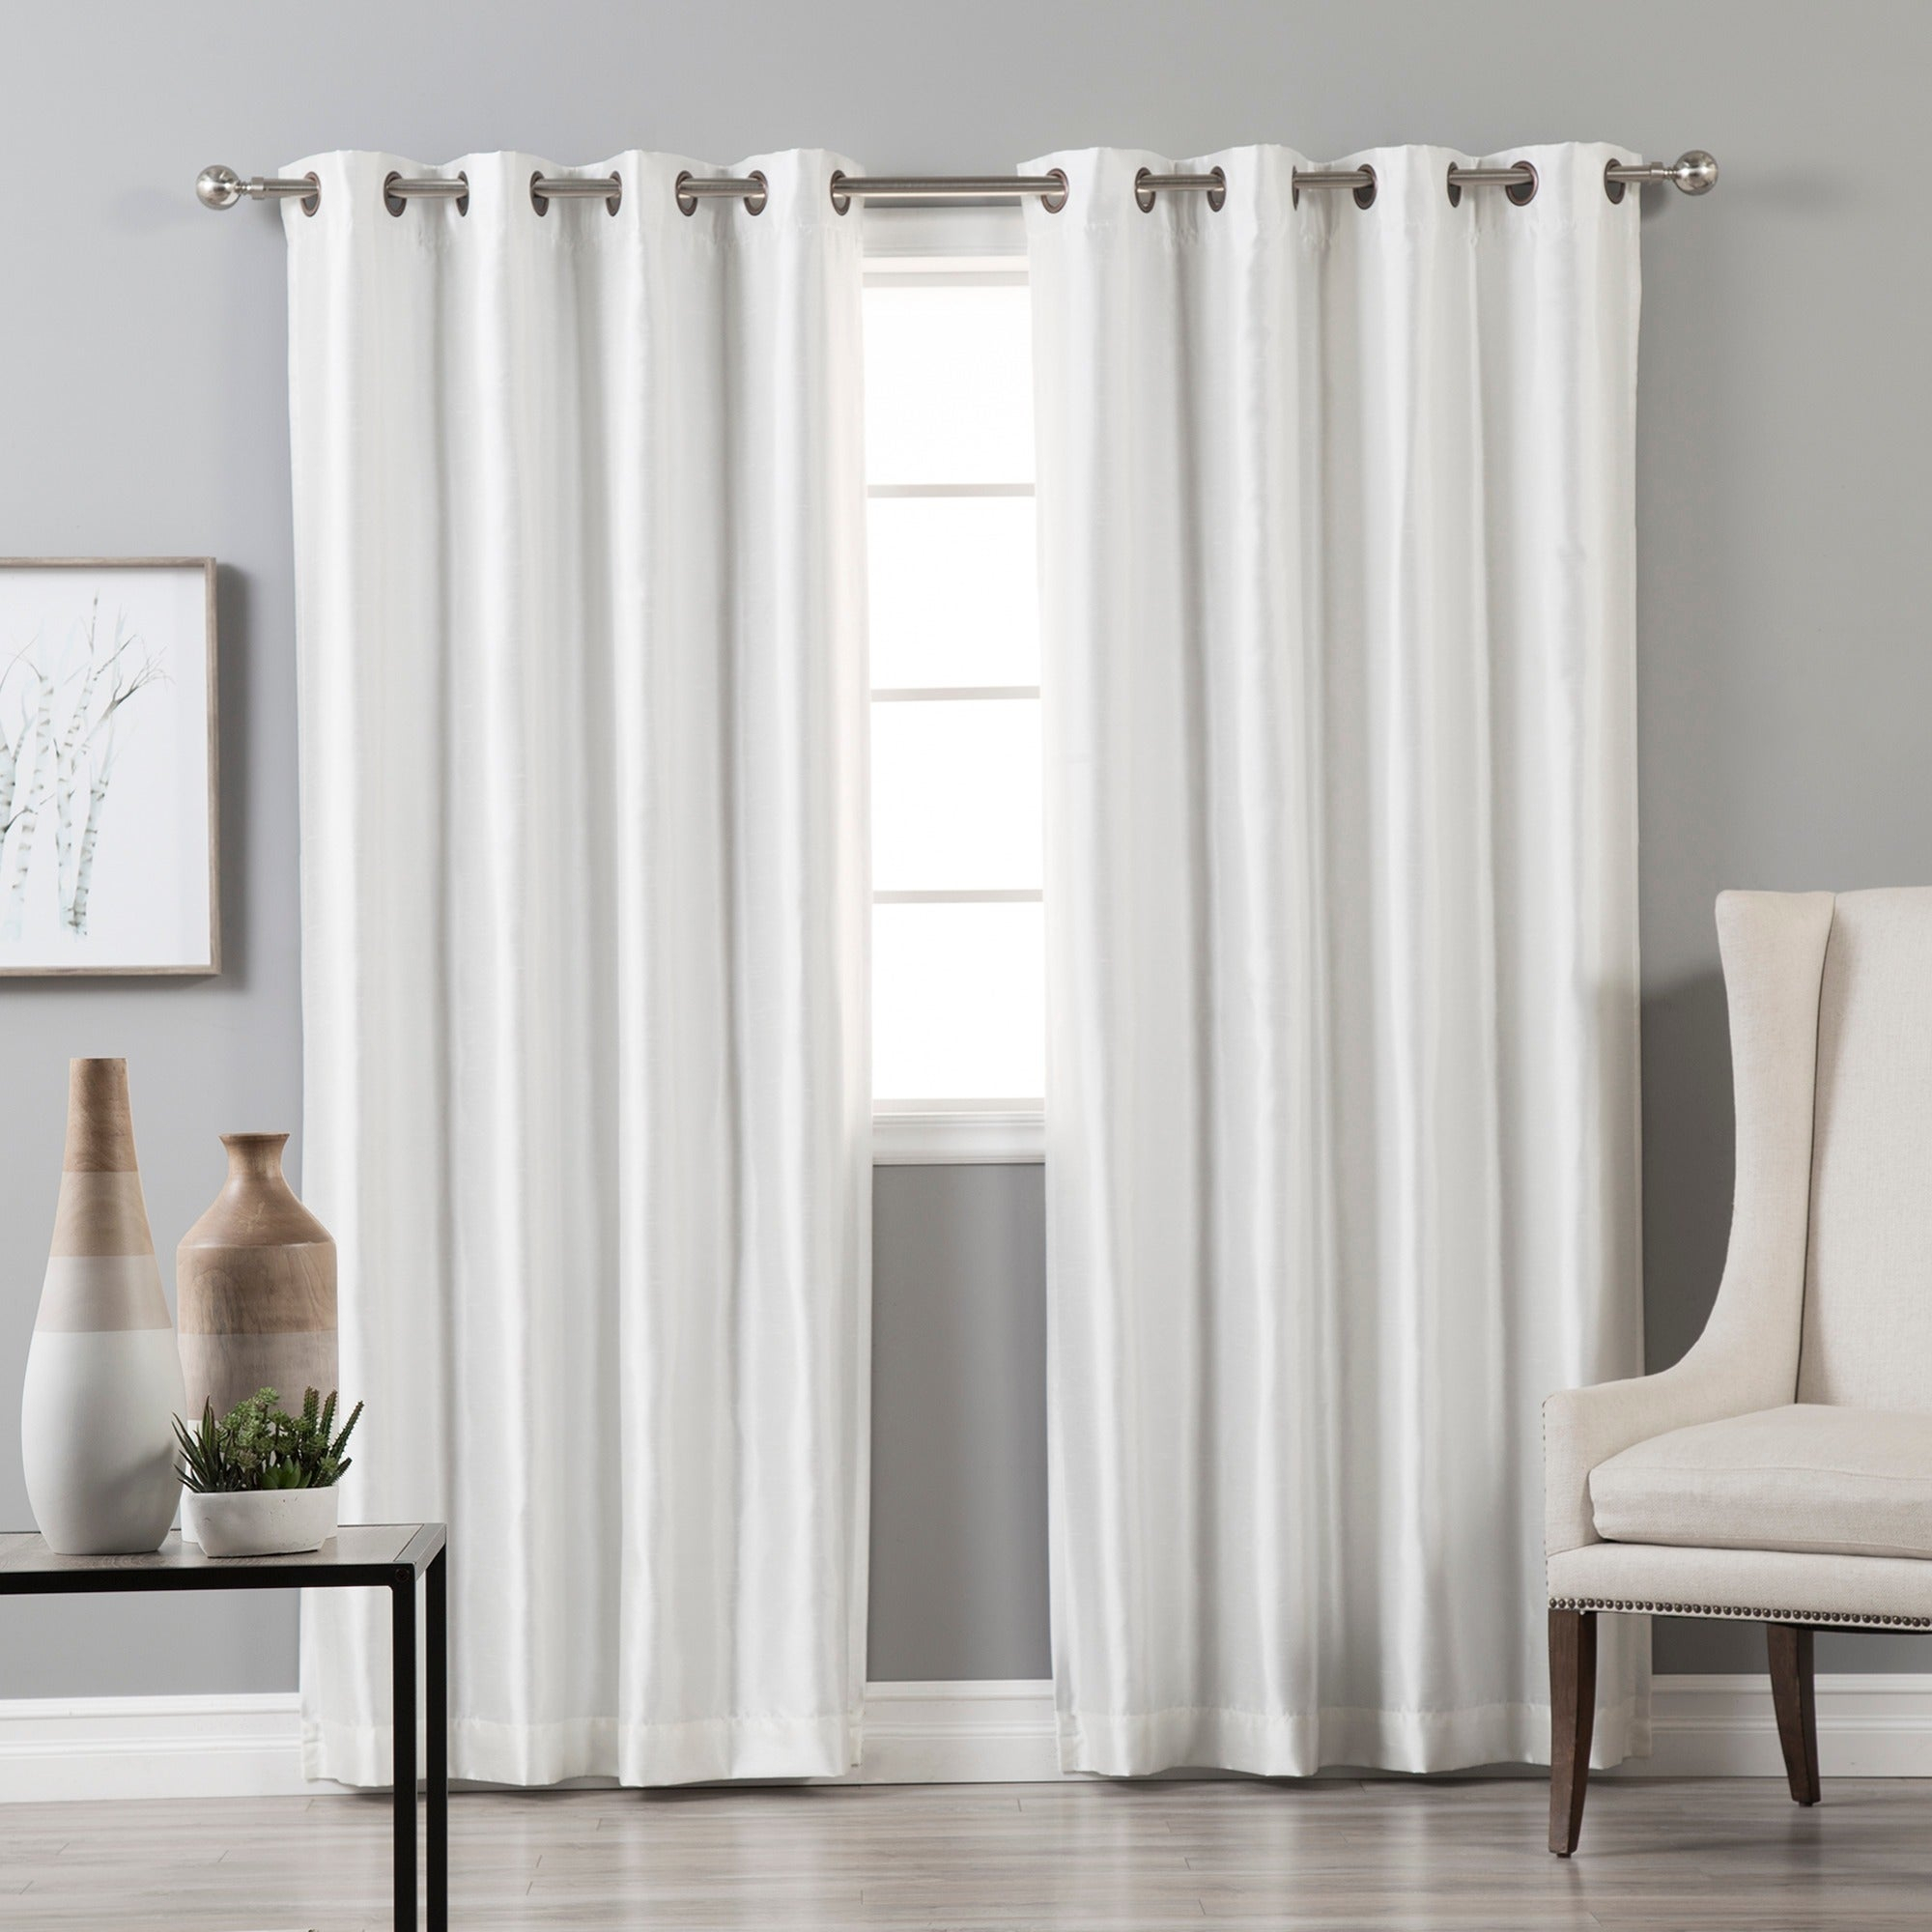 Aurora Home Grommet Top Faux Silk Blackout Curtain Panel Pair In Overseas Faux Silk Blackout Curtain Panel Pairs (View 13 of 20)